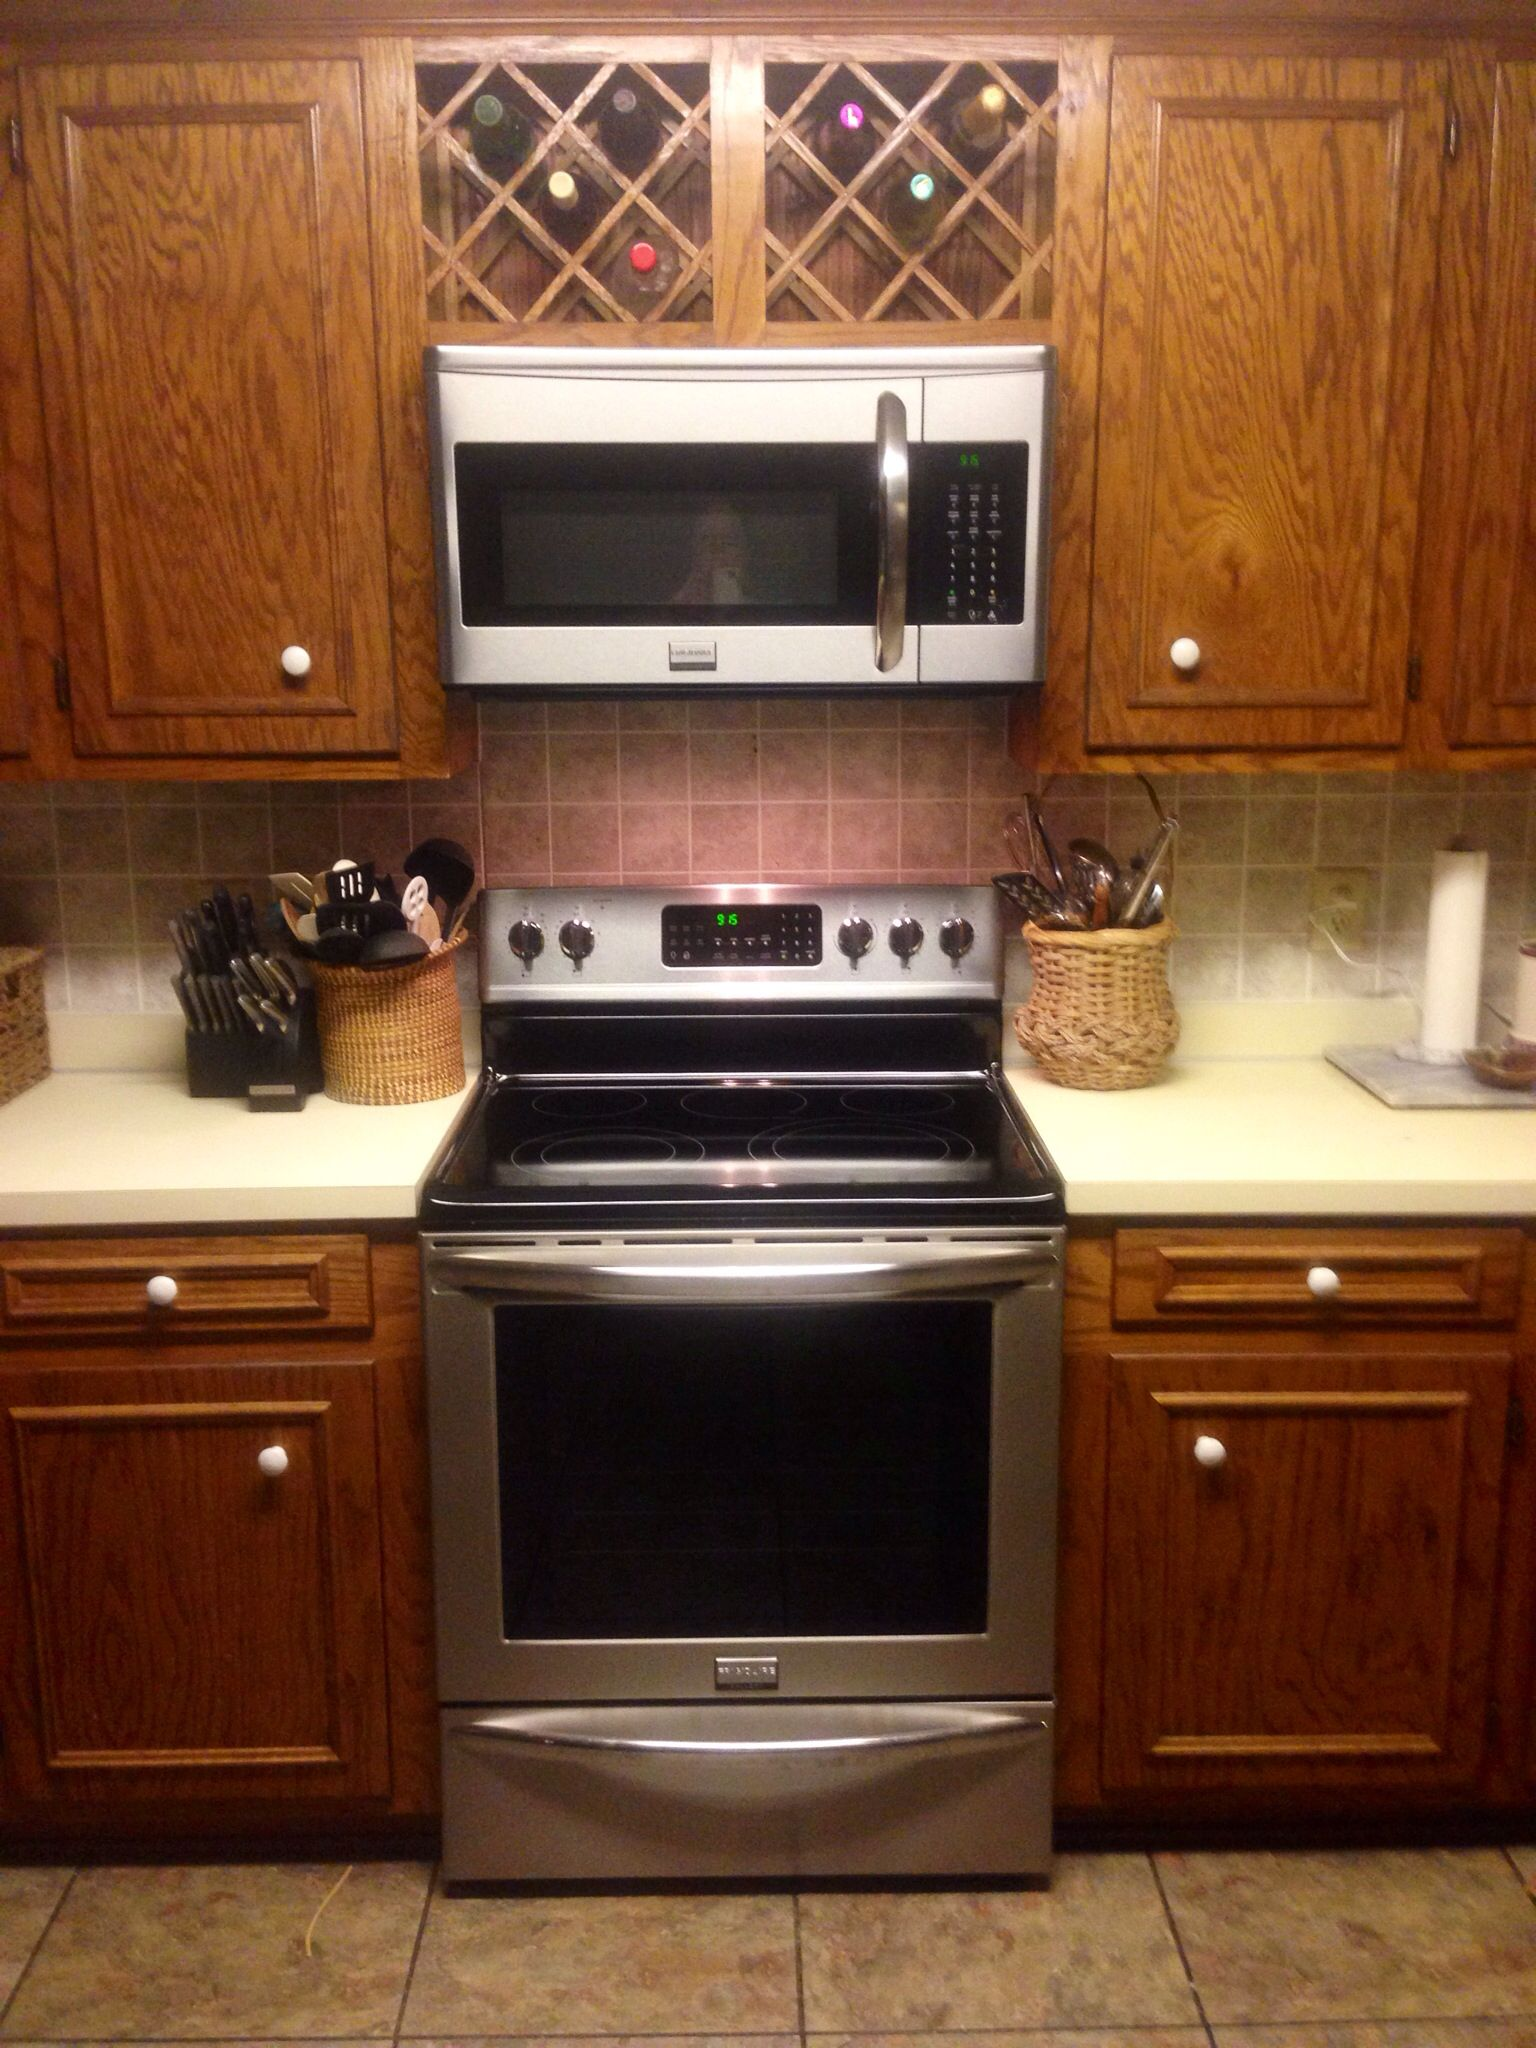 Over The Counter Microwave And Wine Rack Kitchen Cabinet Wine Rack Small Kitchen Appliances Kitchen Remodel